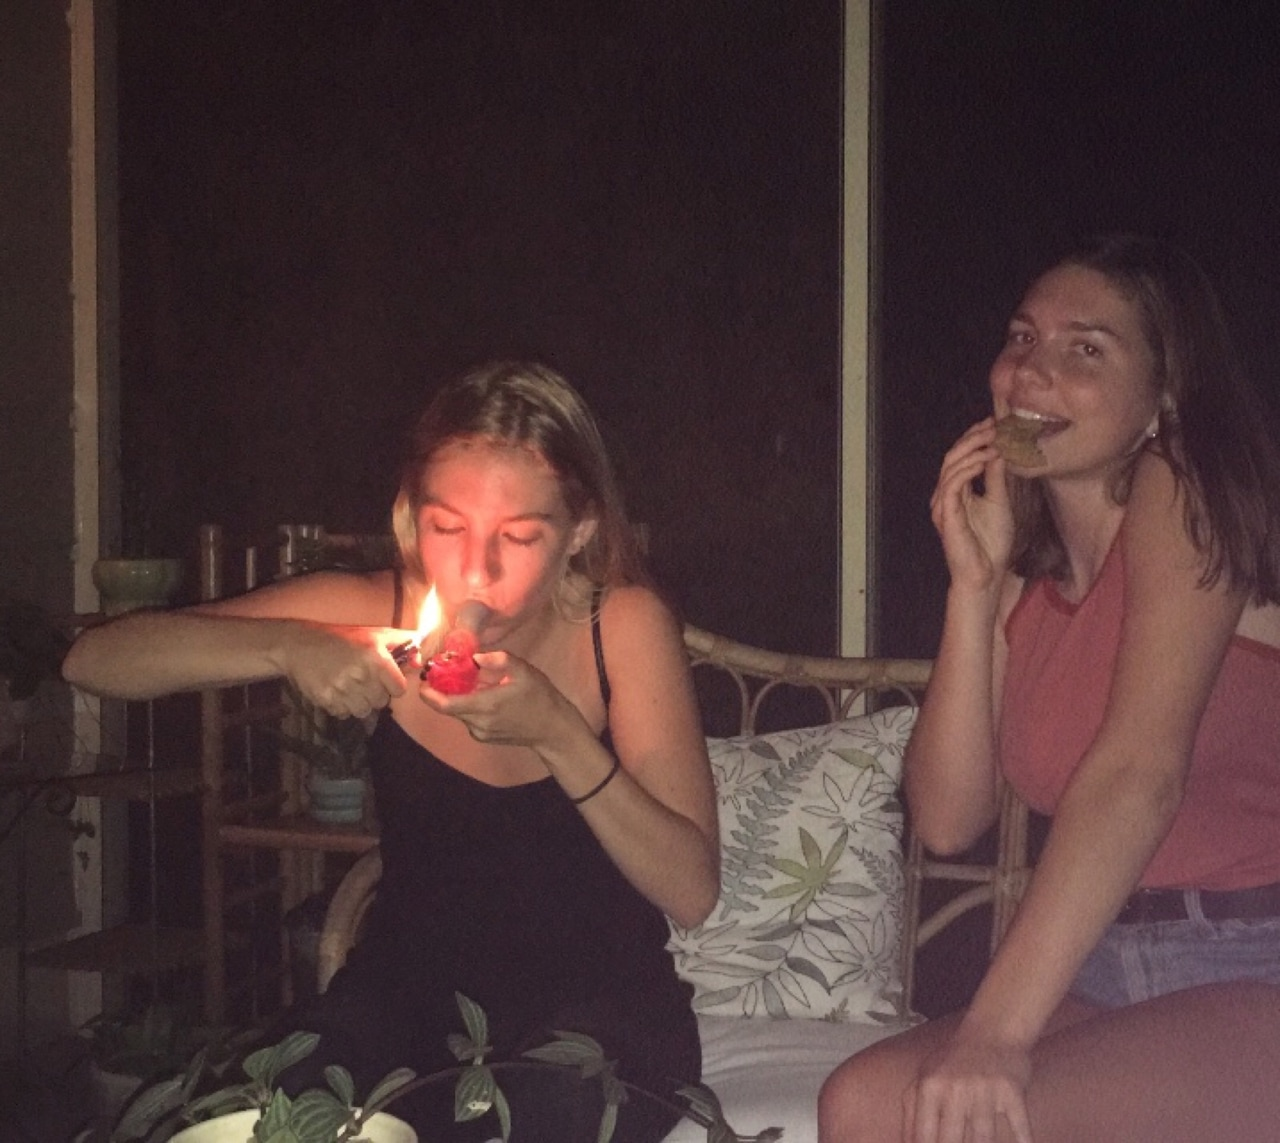 gang, weed, best friend and summertime